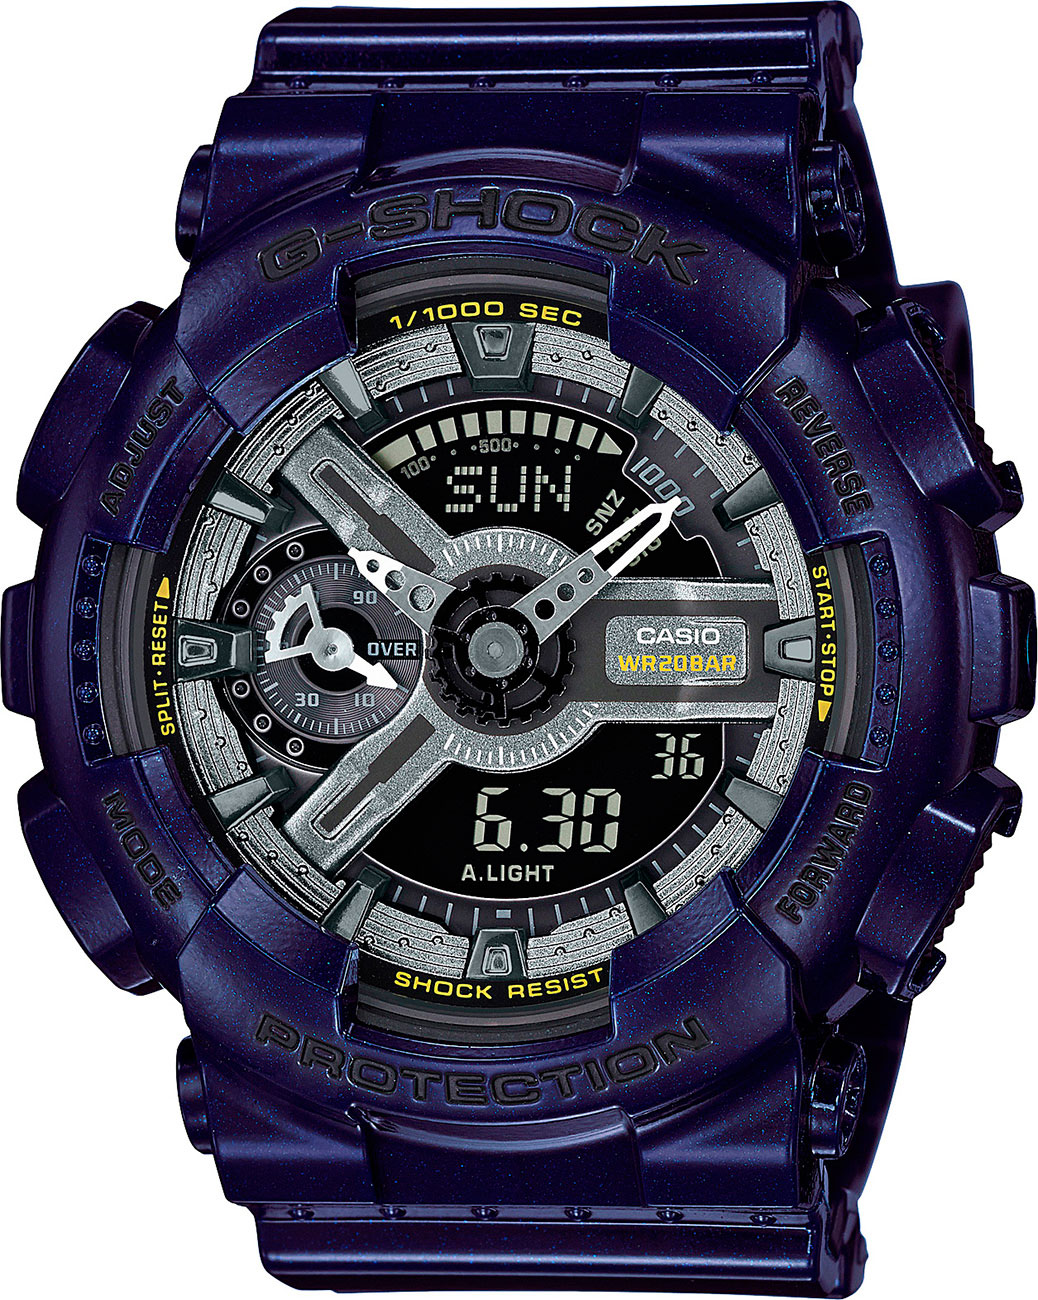 Casio G-shock S Series GMA-S110MC-2A casio часы casio gma s110mc 6a коллекция g shock